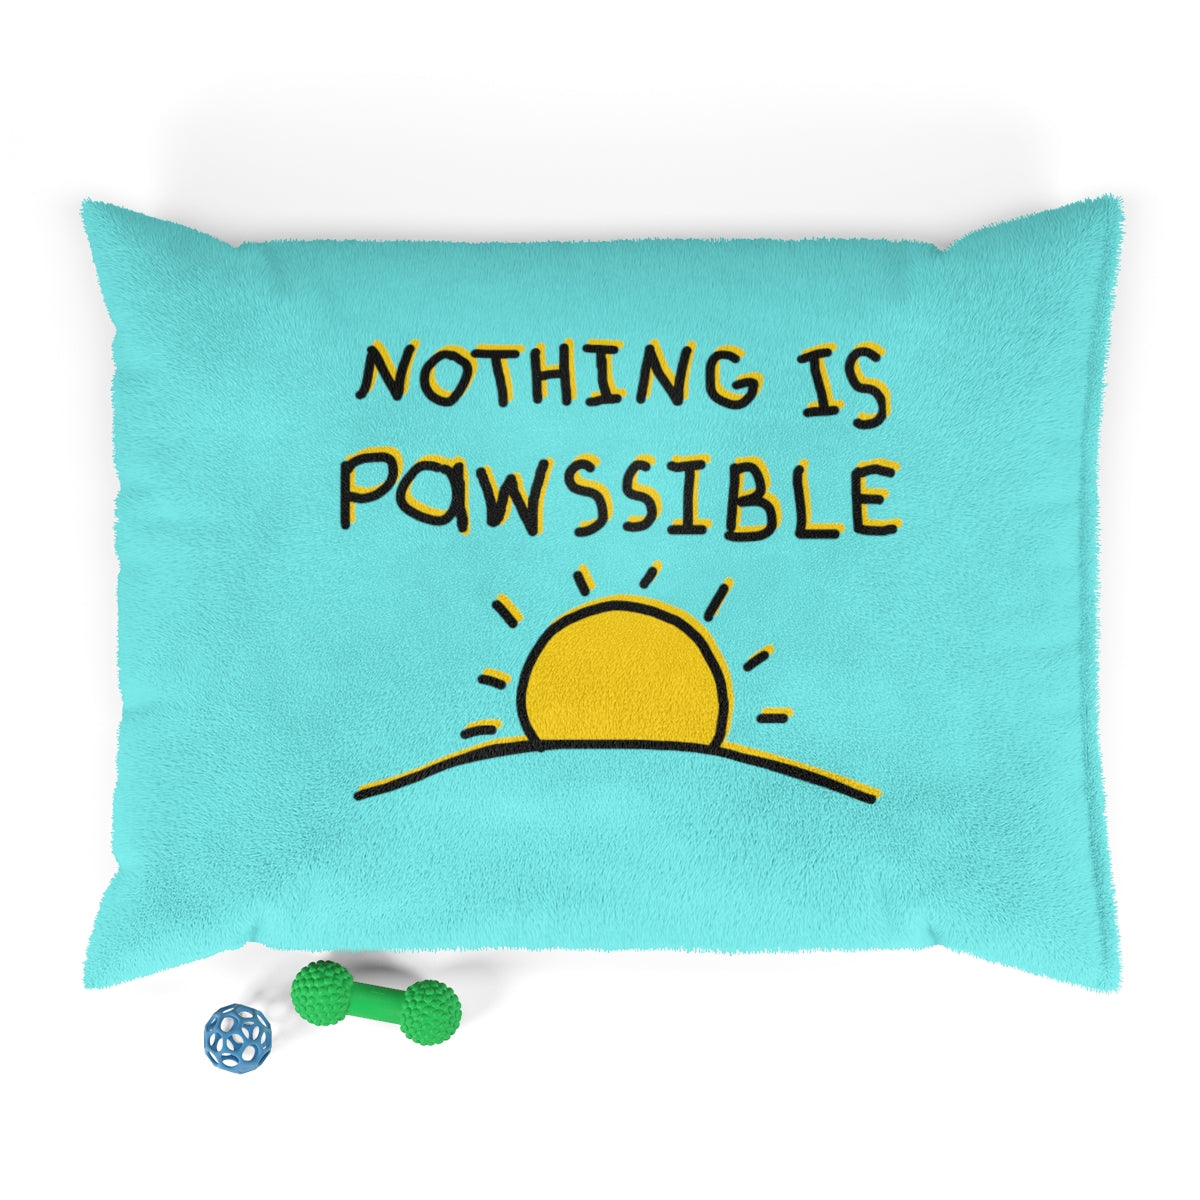 """Nothing is Pawssible"" Pet Bed"